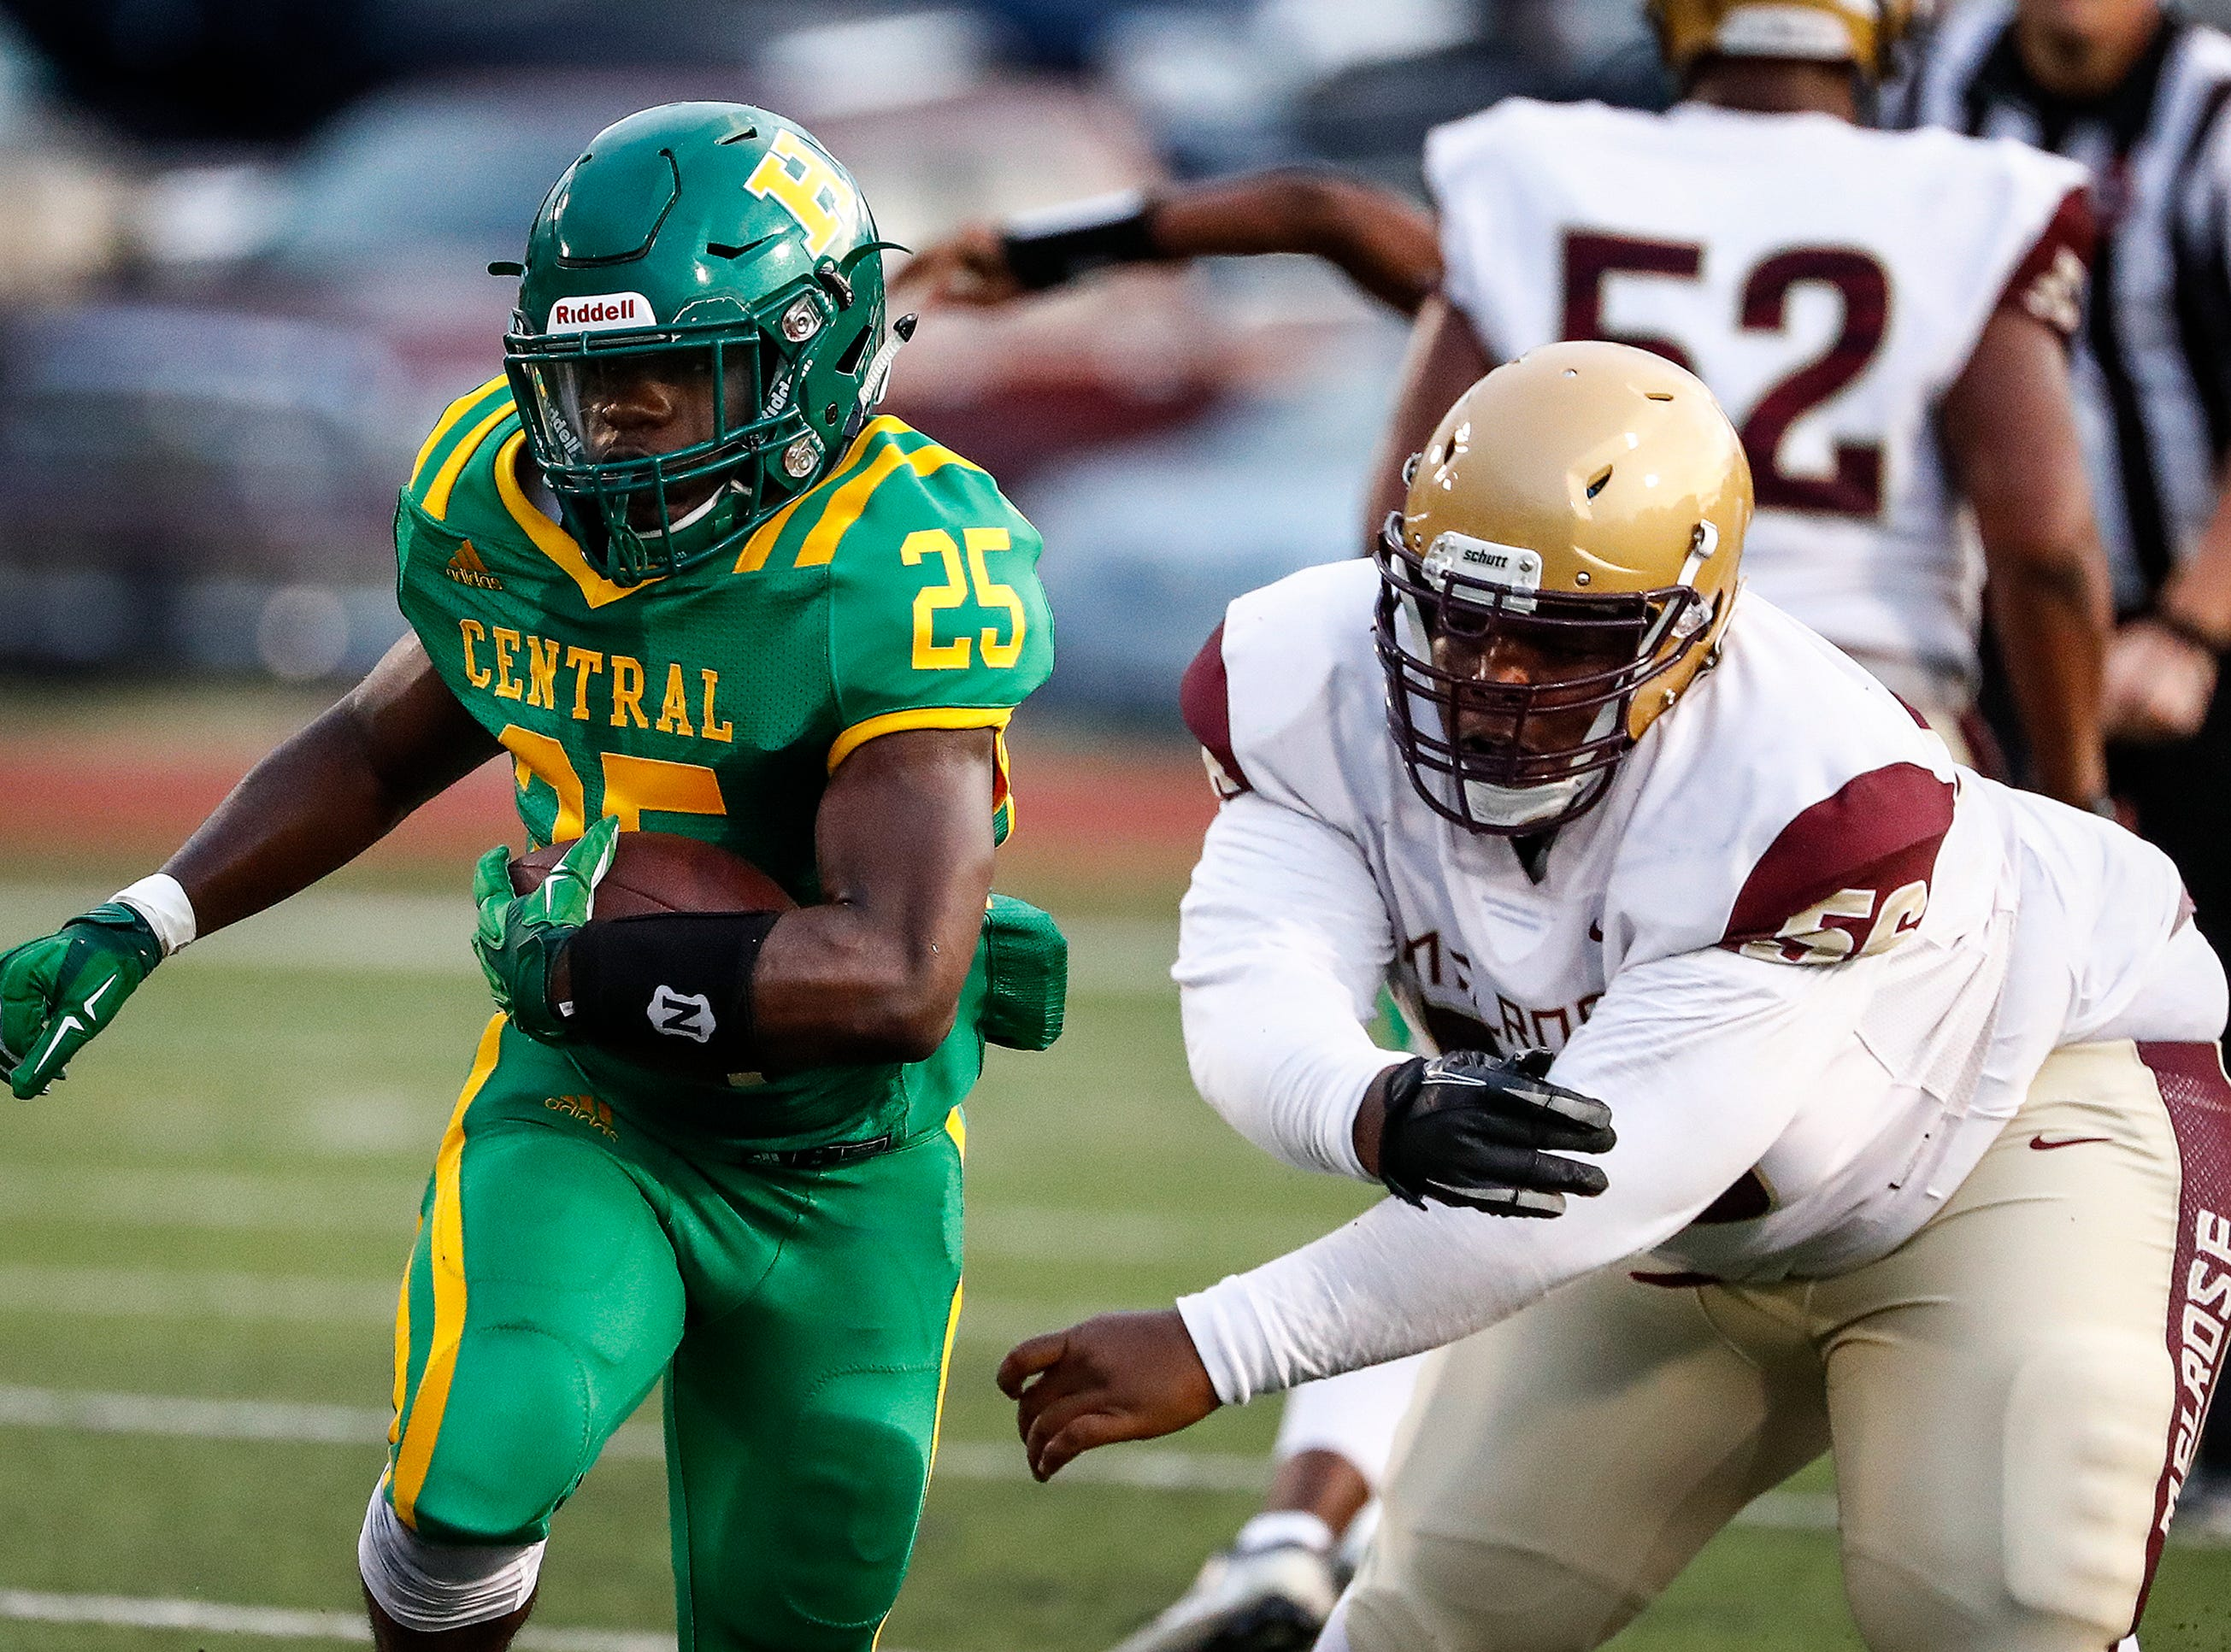 Central running back Alan Thornton (left) runs away from Melrose defender LeKelvin Boodie (right) during action of the season opener on Friday, Aug. 17, 2018, at Crump Stadium.